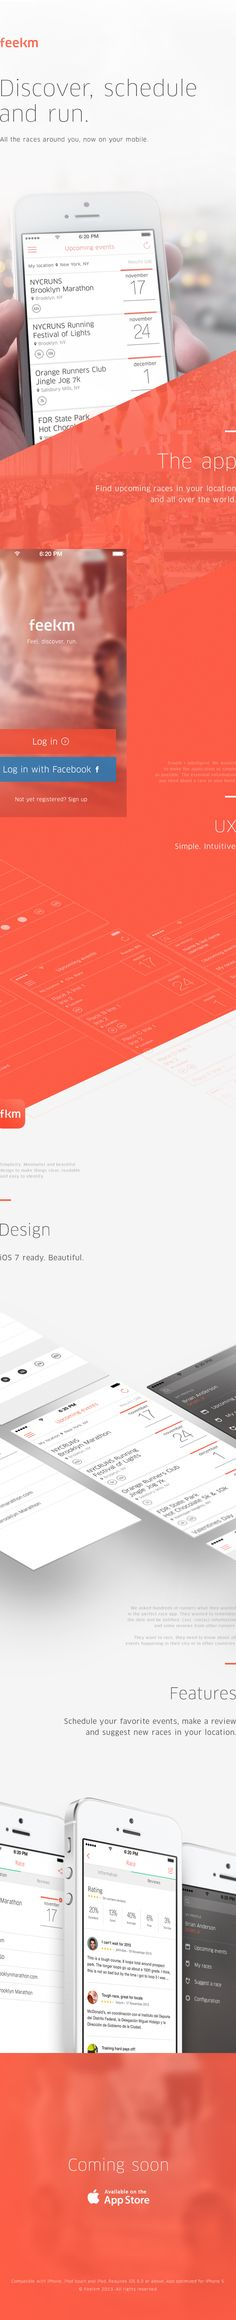 Feelkm by Manuel Navarro Orozco, via Behance